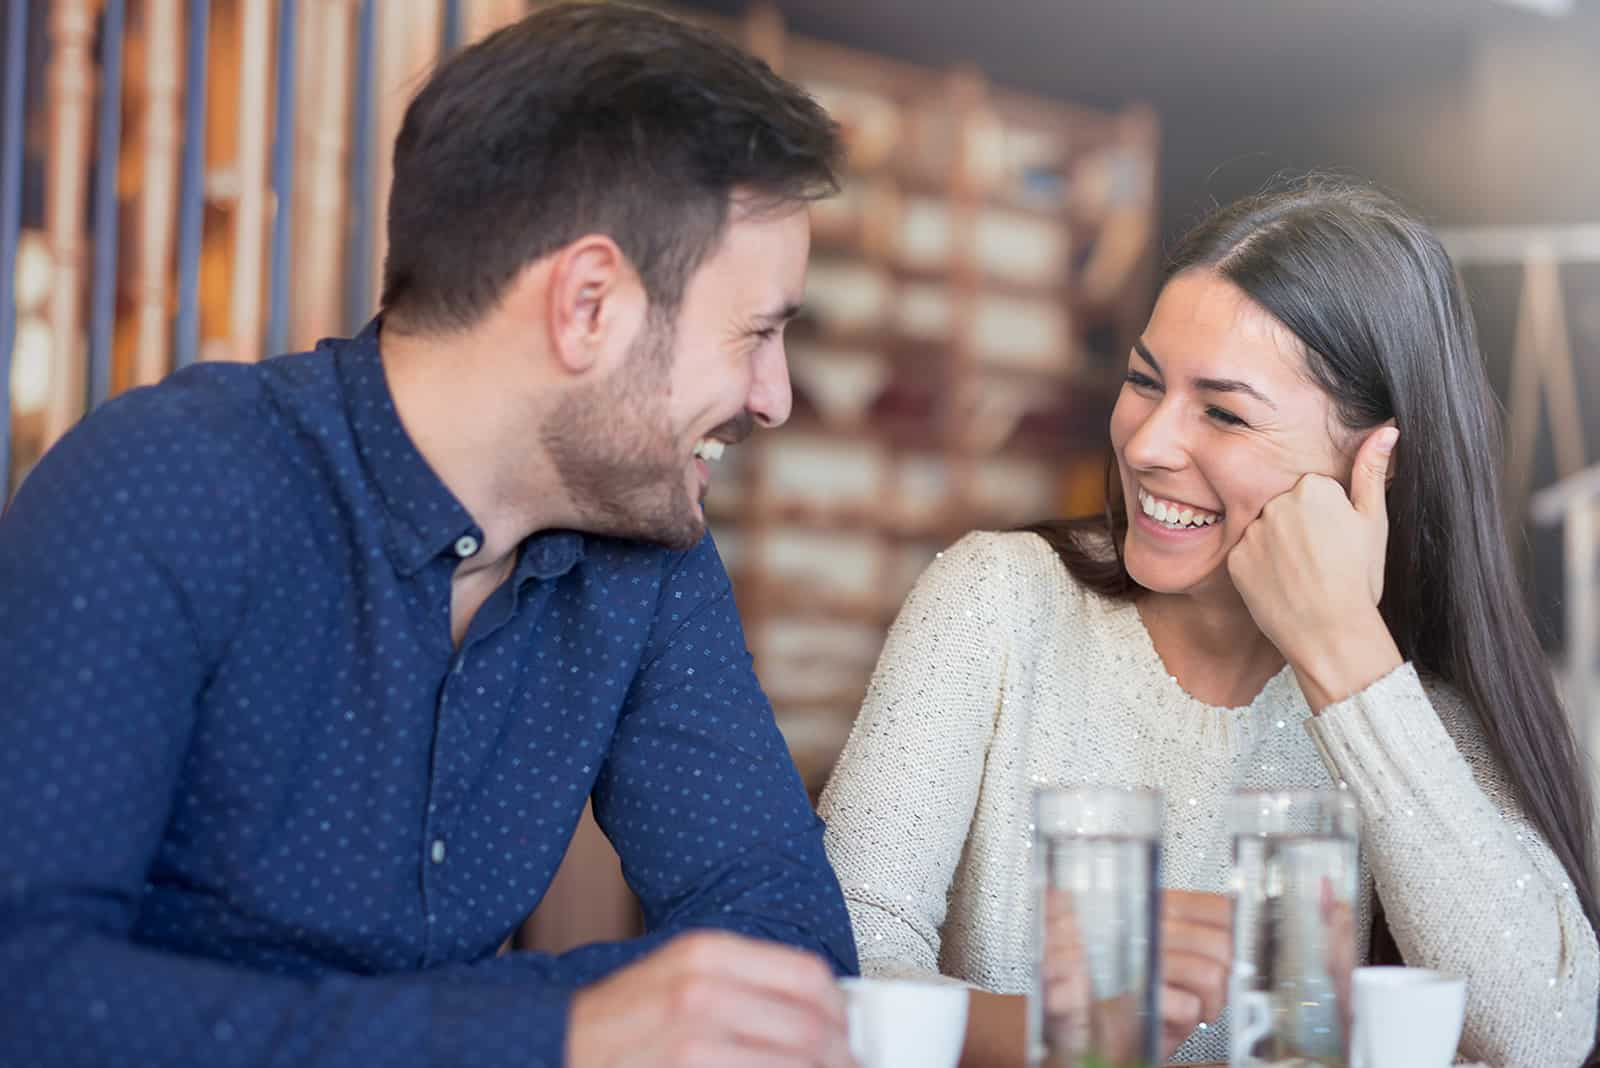 a laughing couple sitting in the cafe and enjoying conversation